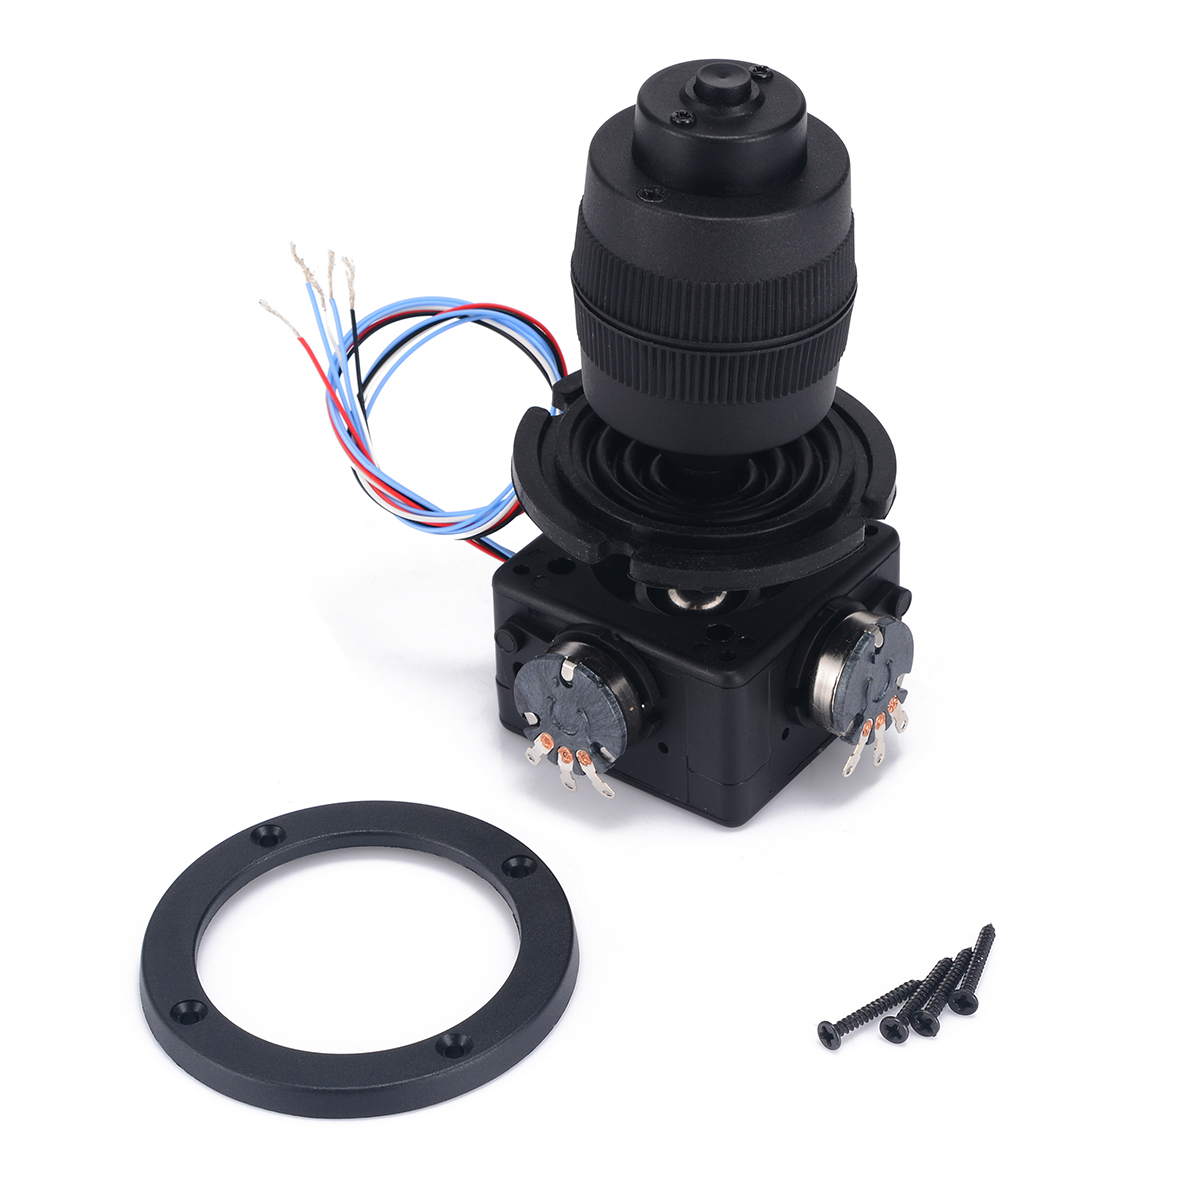 Black 4-Axis Joystick Potentiometer Button with Wire For JH-D400X-R4 10K 4D Rocker Potentiometer Machine Control спот citilux ы герда cl523521 page 5